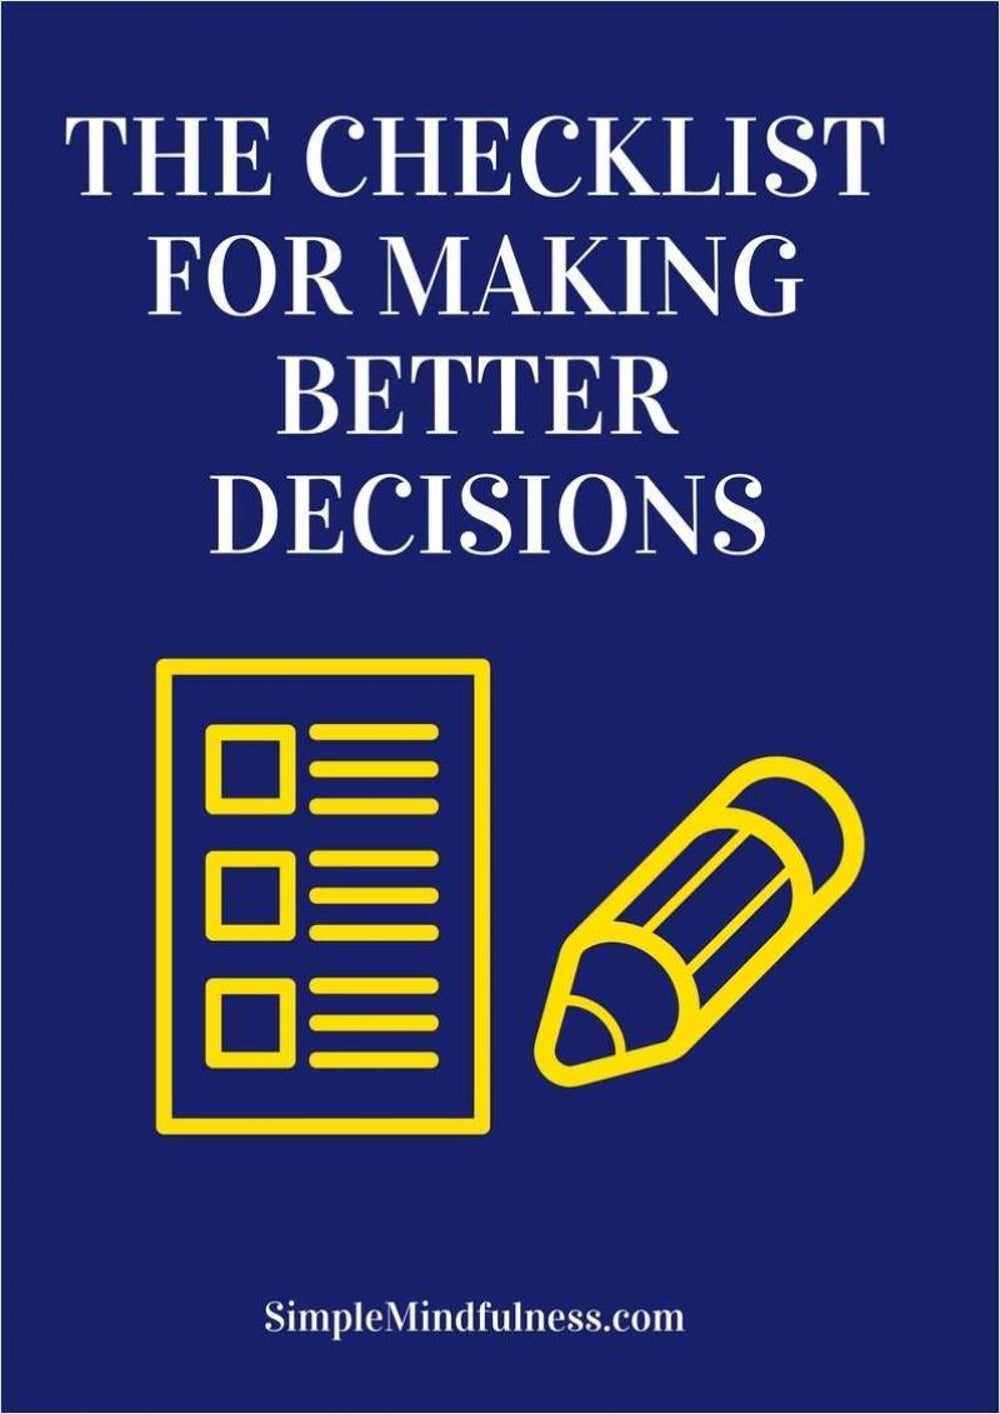 The Checklist for Making Better Decisions